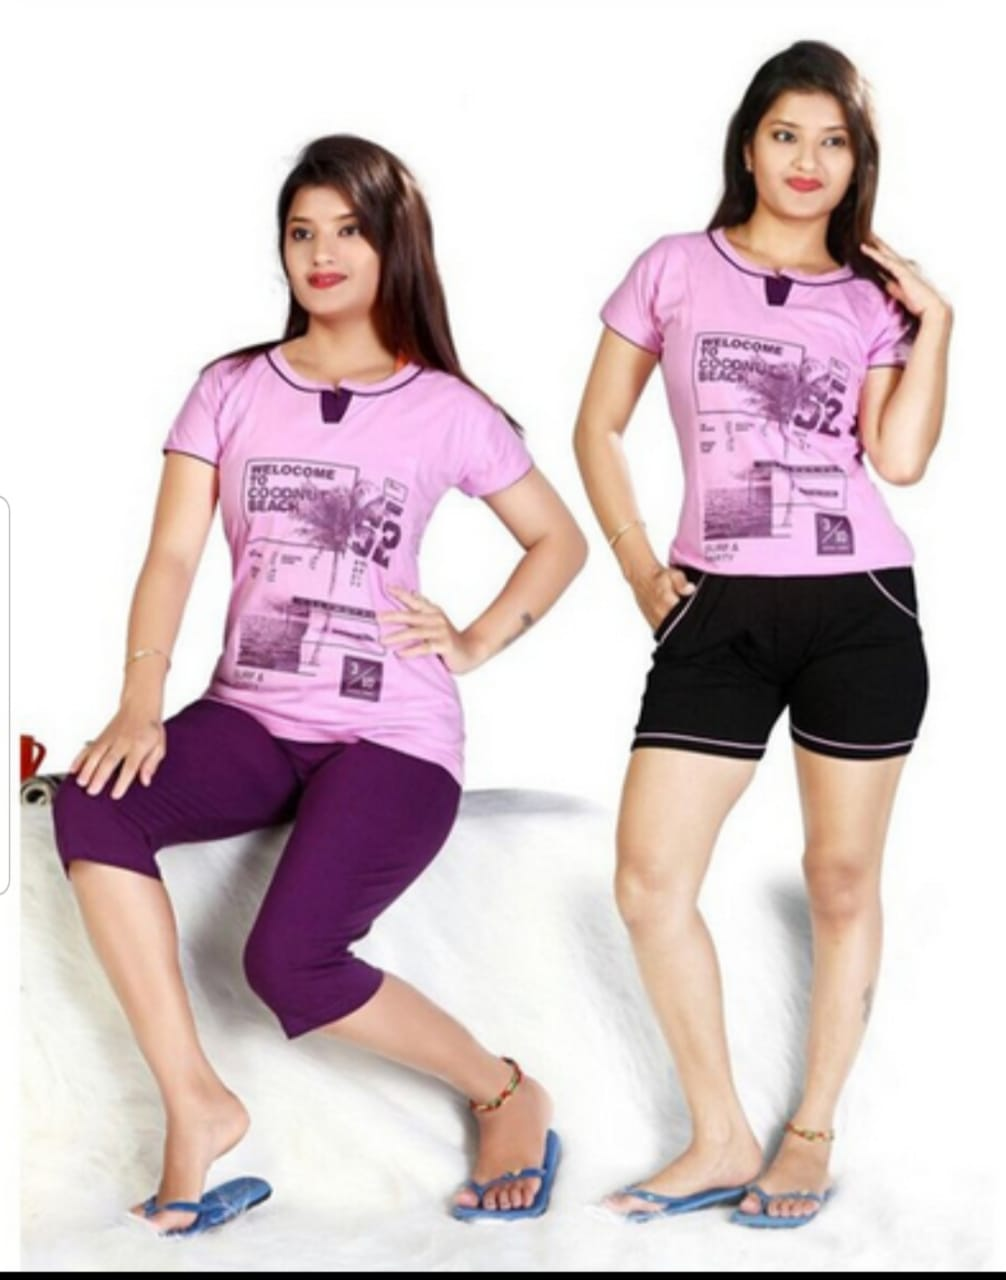 HSF Night Wear for 399/- - hsf31